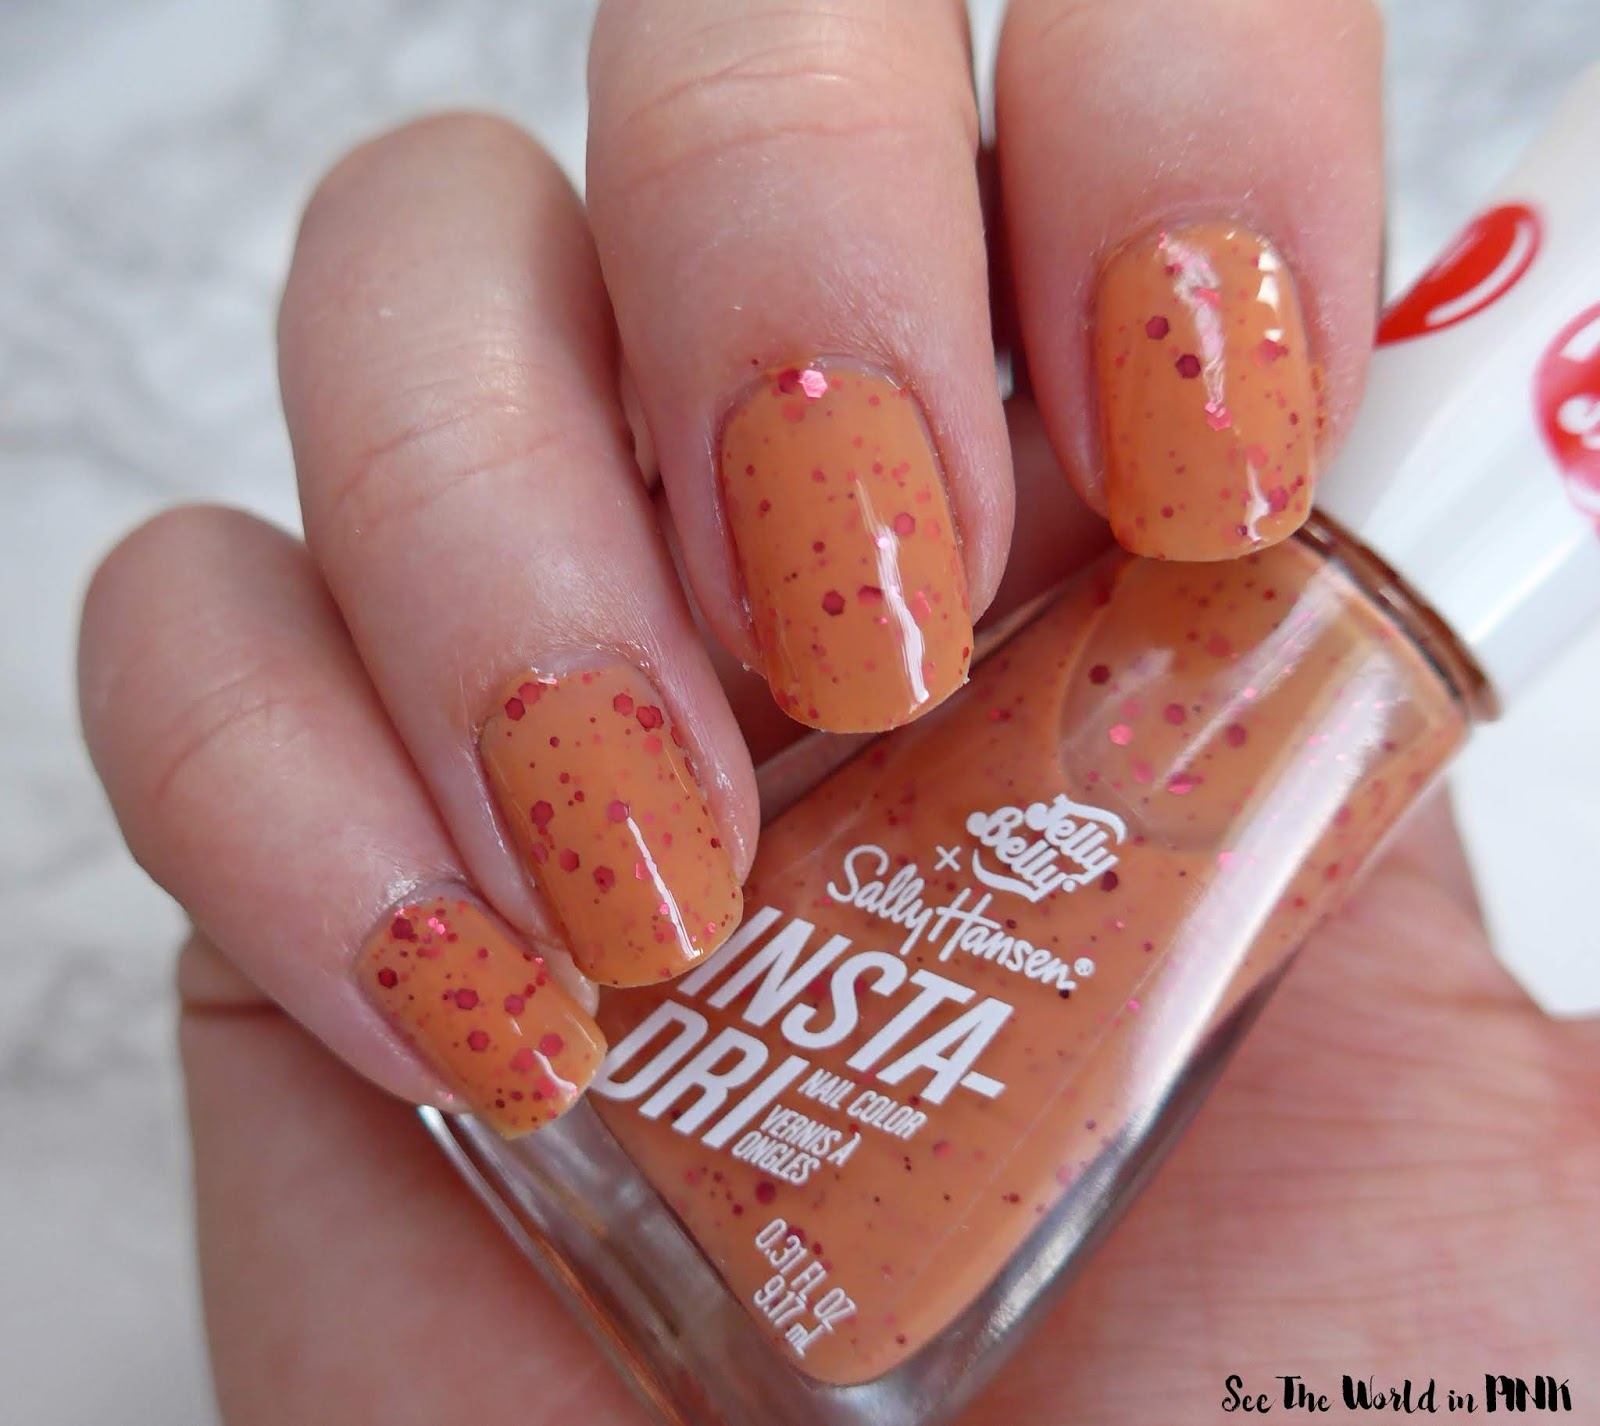 Manicure Monday - Jelly Belly + Sally Hansen Insta-Dri Nail Colors Swatched